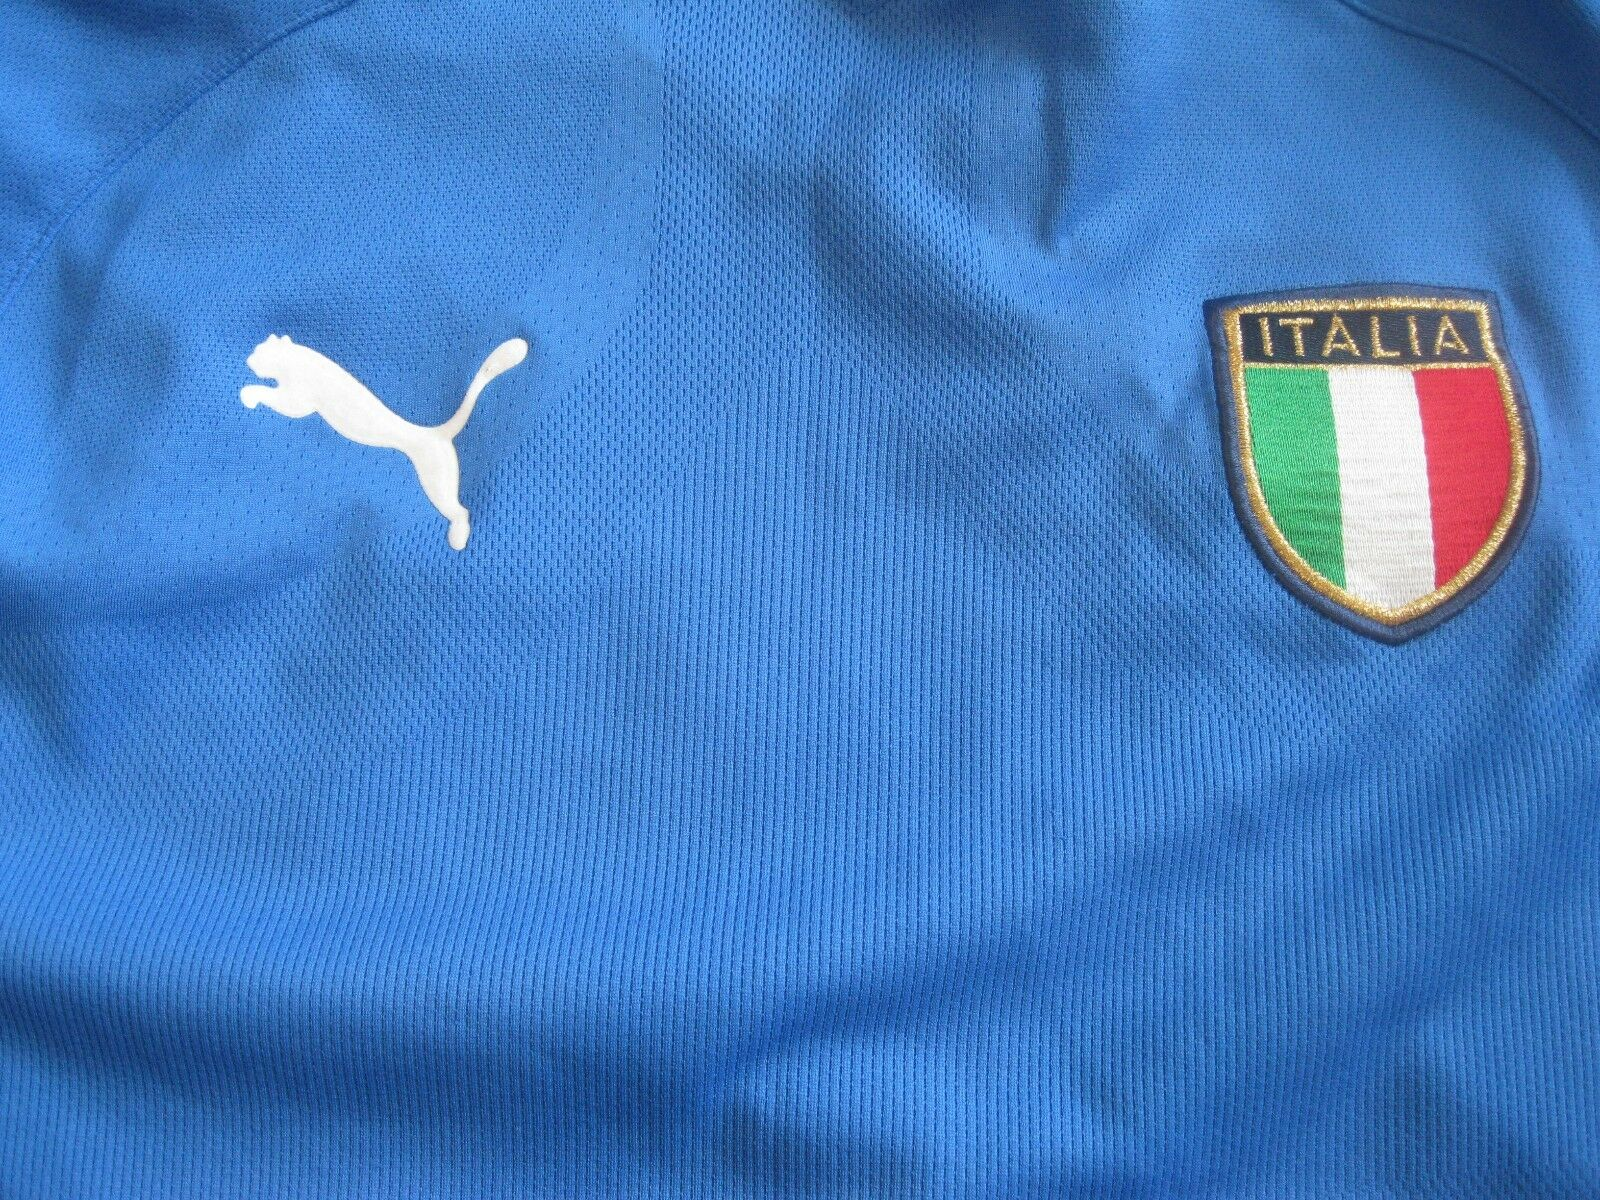 Italy national team 2003/2004 home Size M Puma jersey